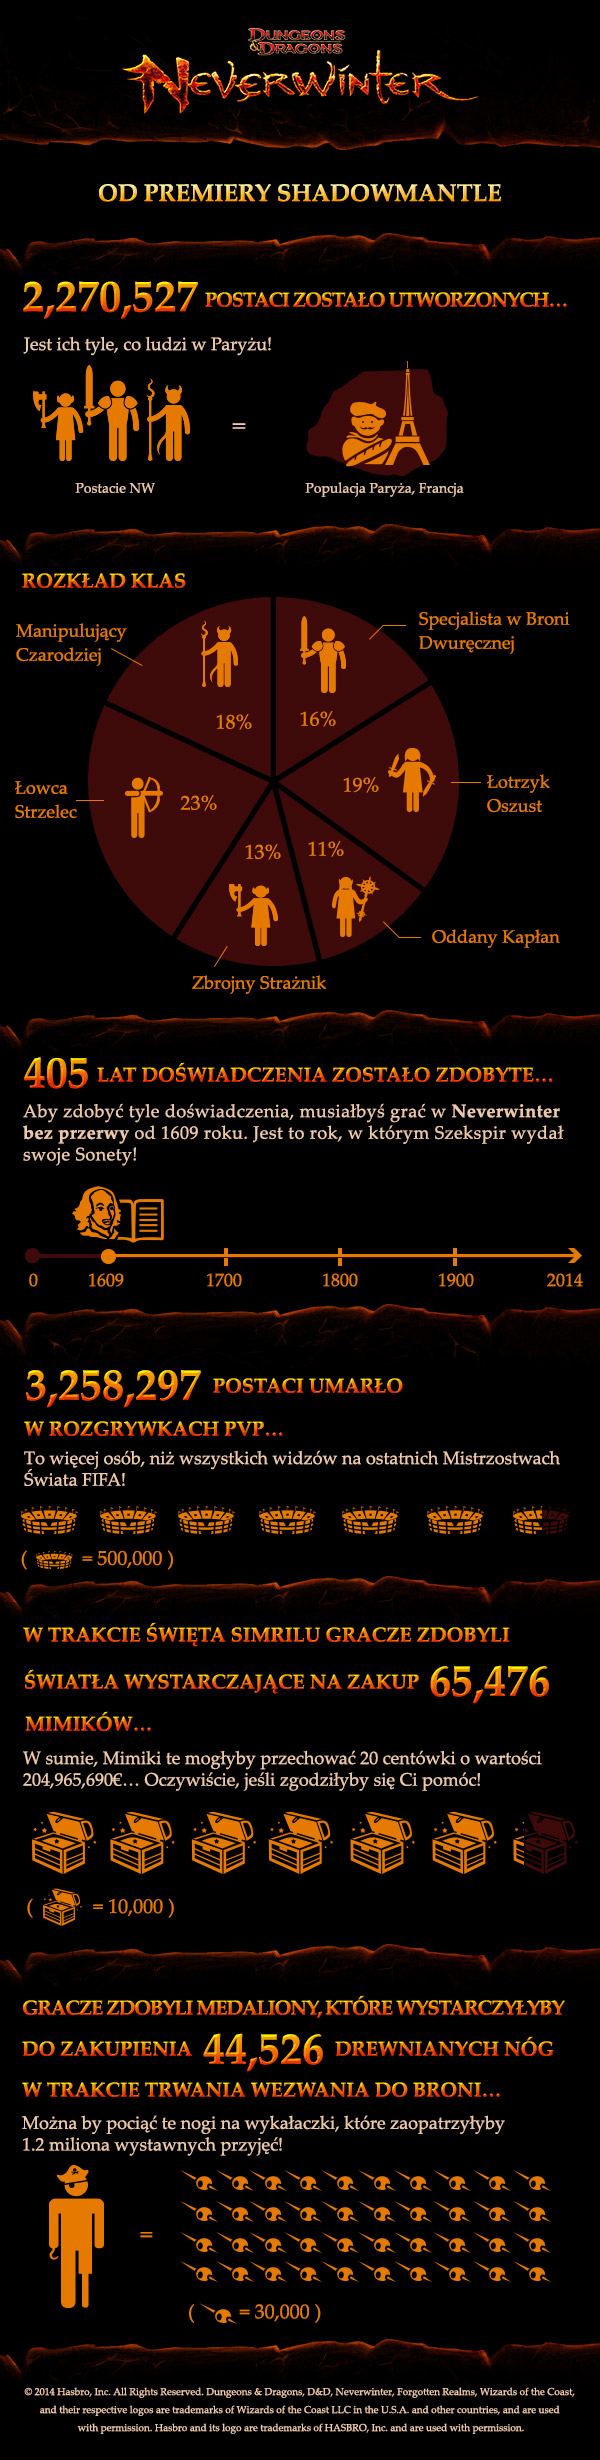 nw_infographics_shadowmantle_PL